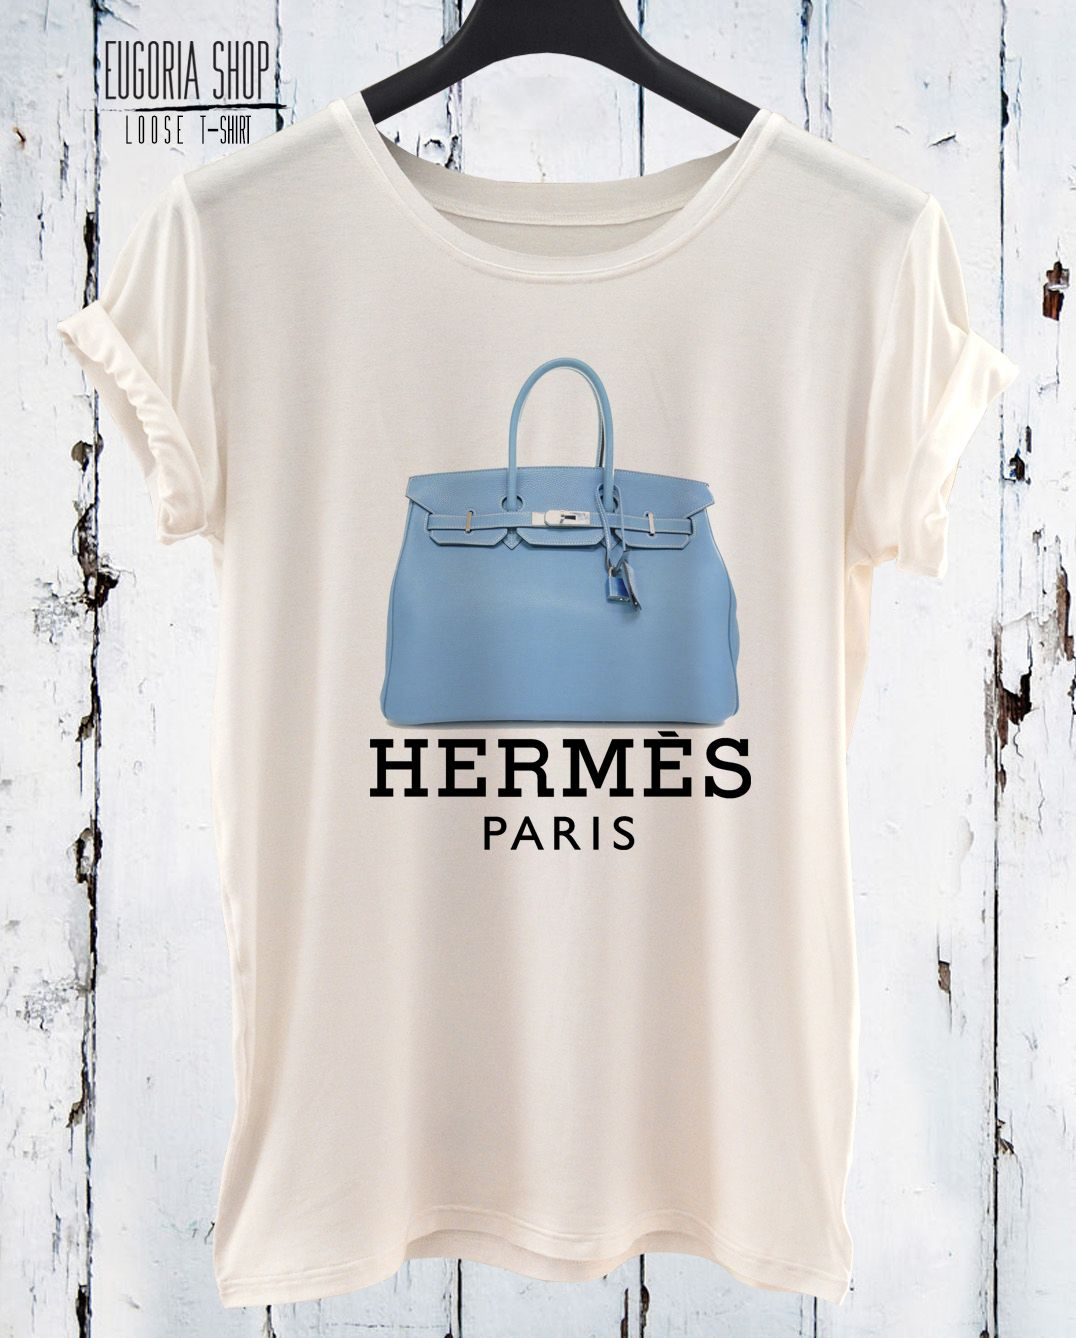 Blue Bag From Hermes Printed On My Fashion T Shirt By Eugoria Shop